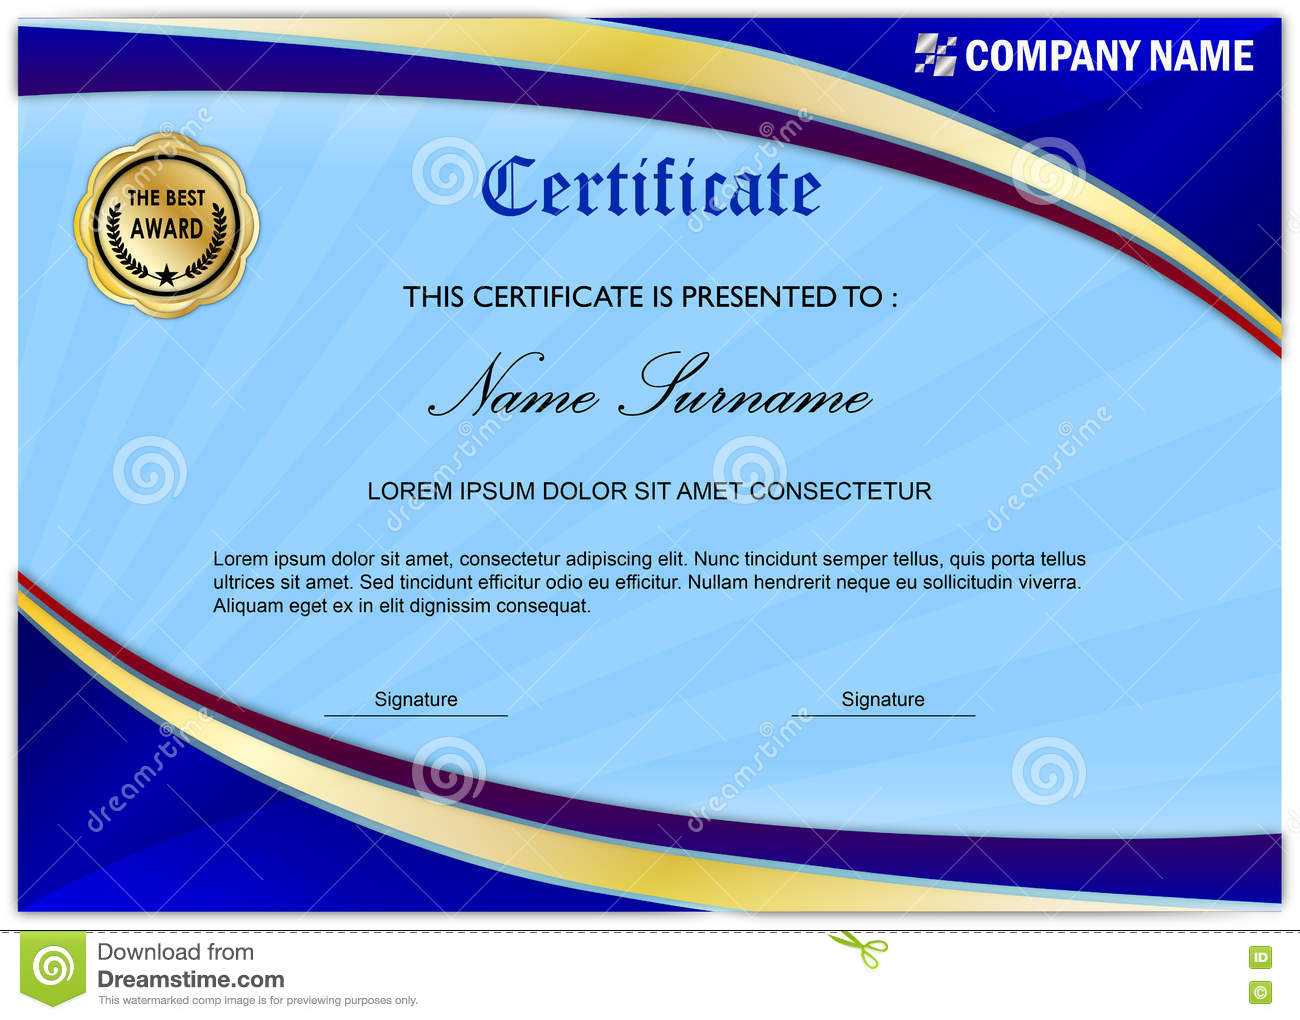 Modern certificate diploma award template blue gold stock modern certificate diploma award template blue gold royalty free illustration yelopaper Image collections